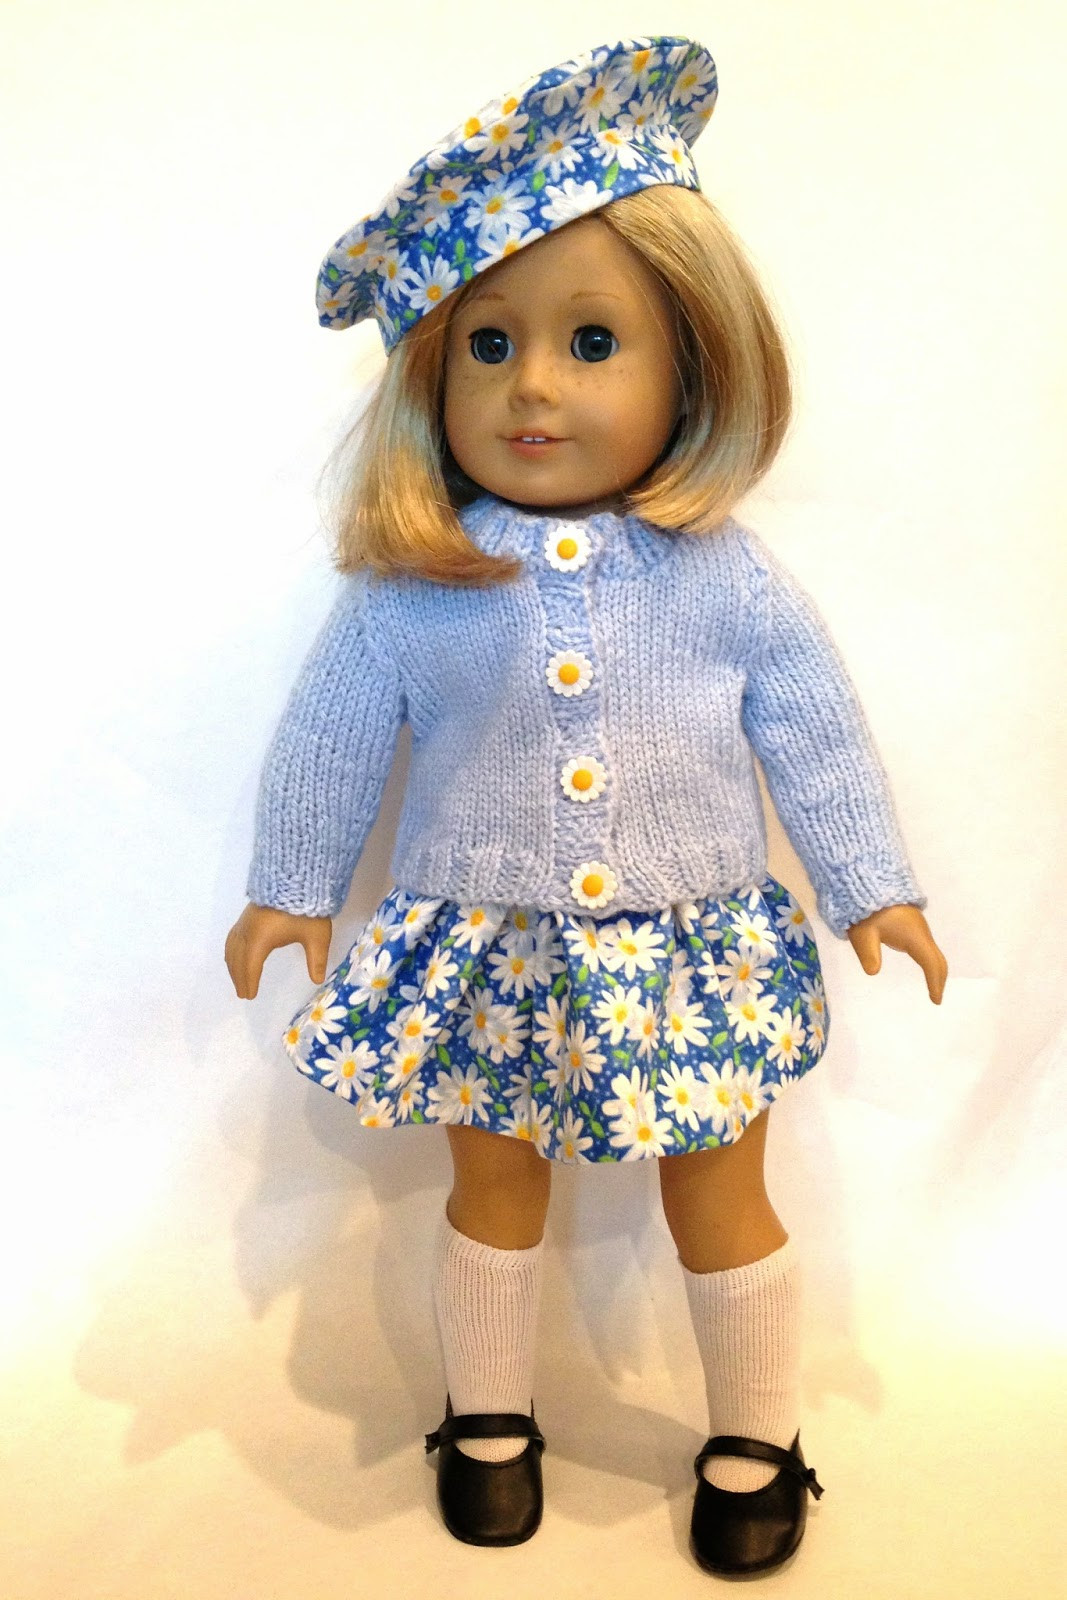 Best Of A T for Dolly Tam Skirt and Sweater Pattern Yours Free American Girl Doll Patterns Of Top 44 Pics Free American Girl Doll Patterns